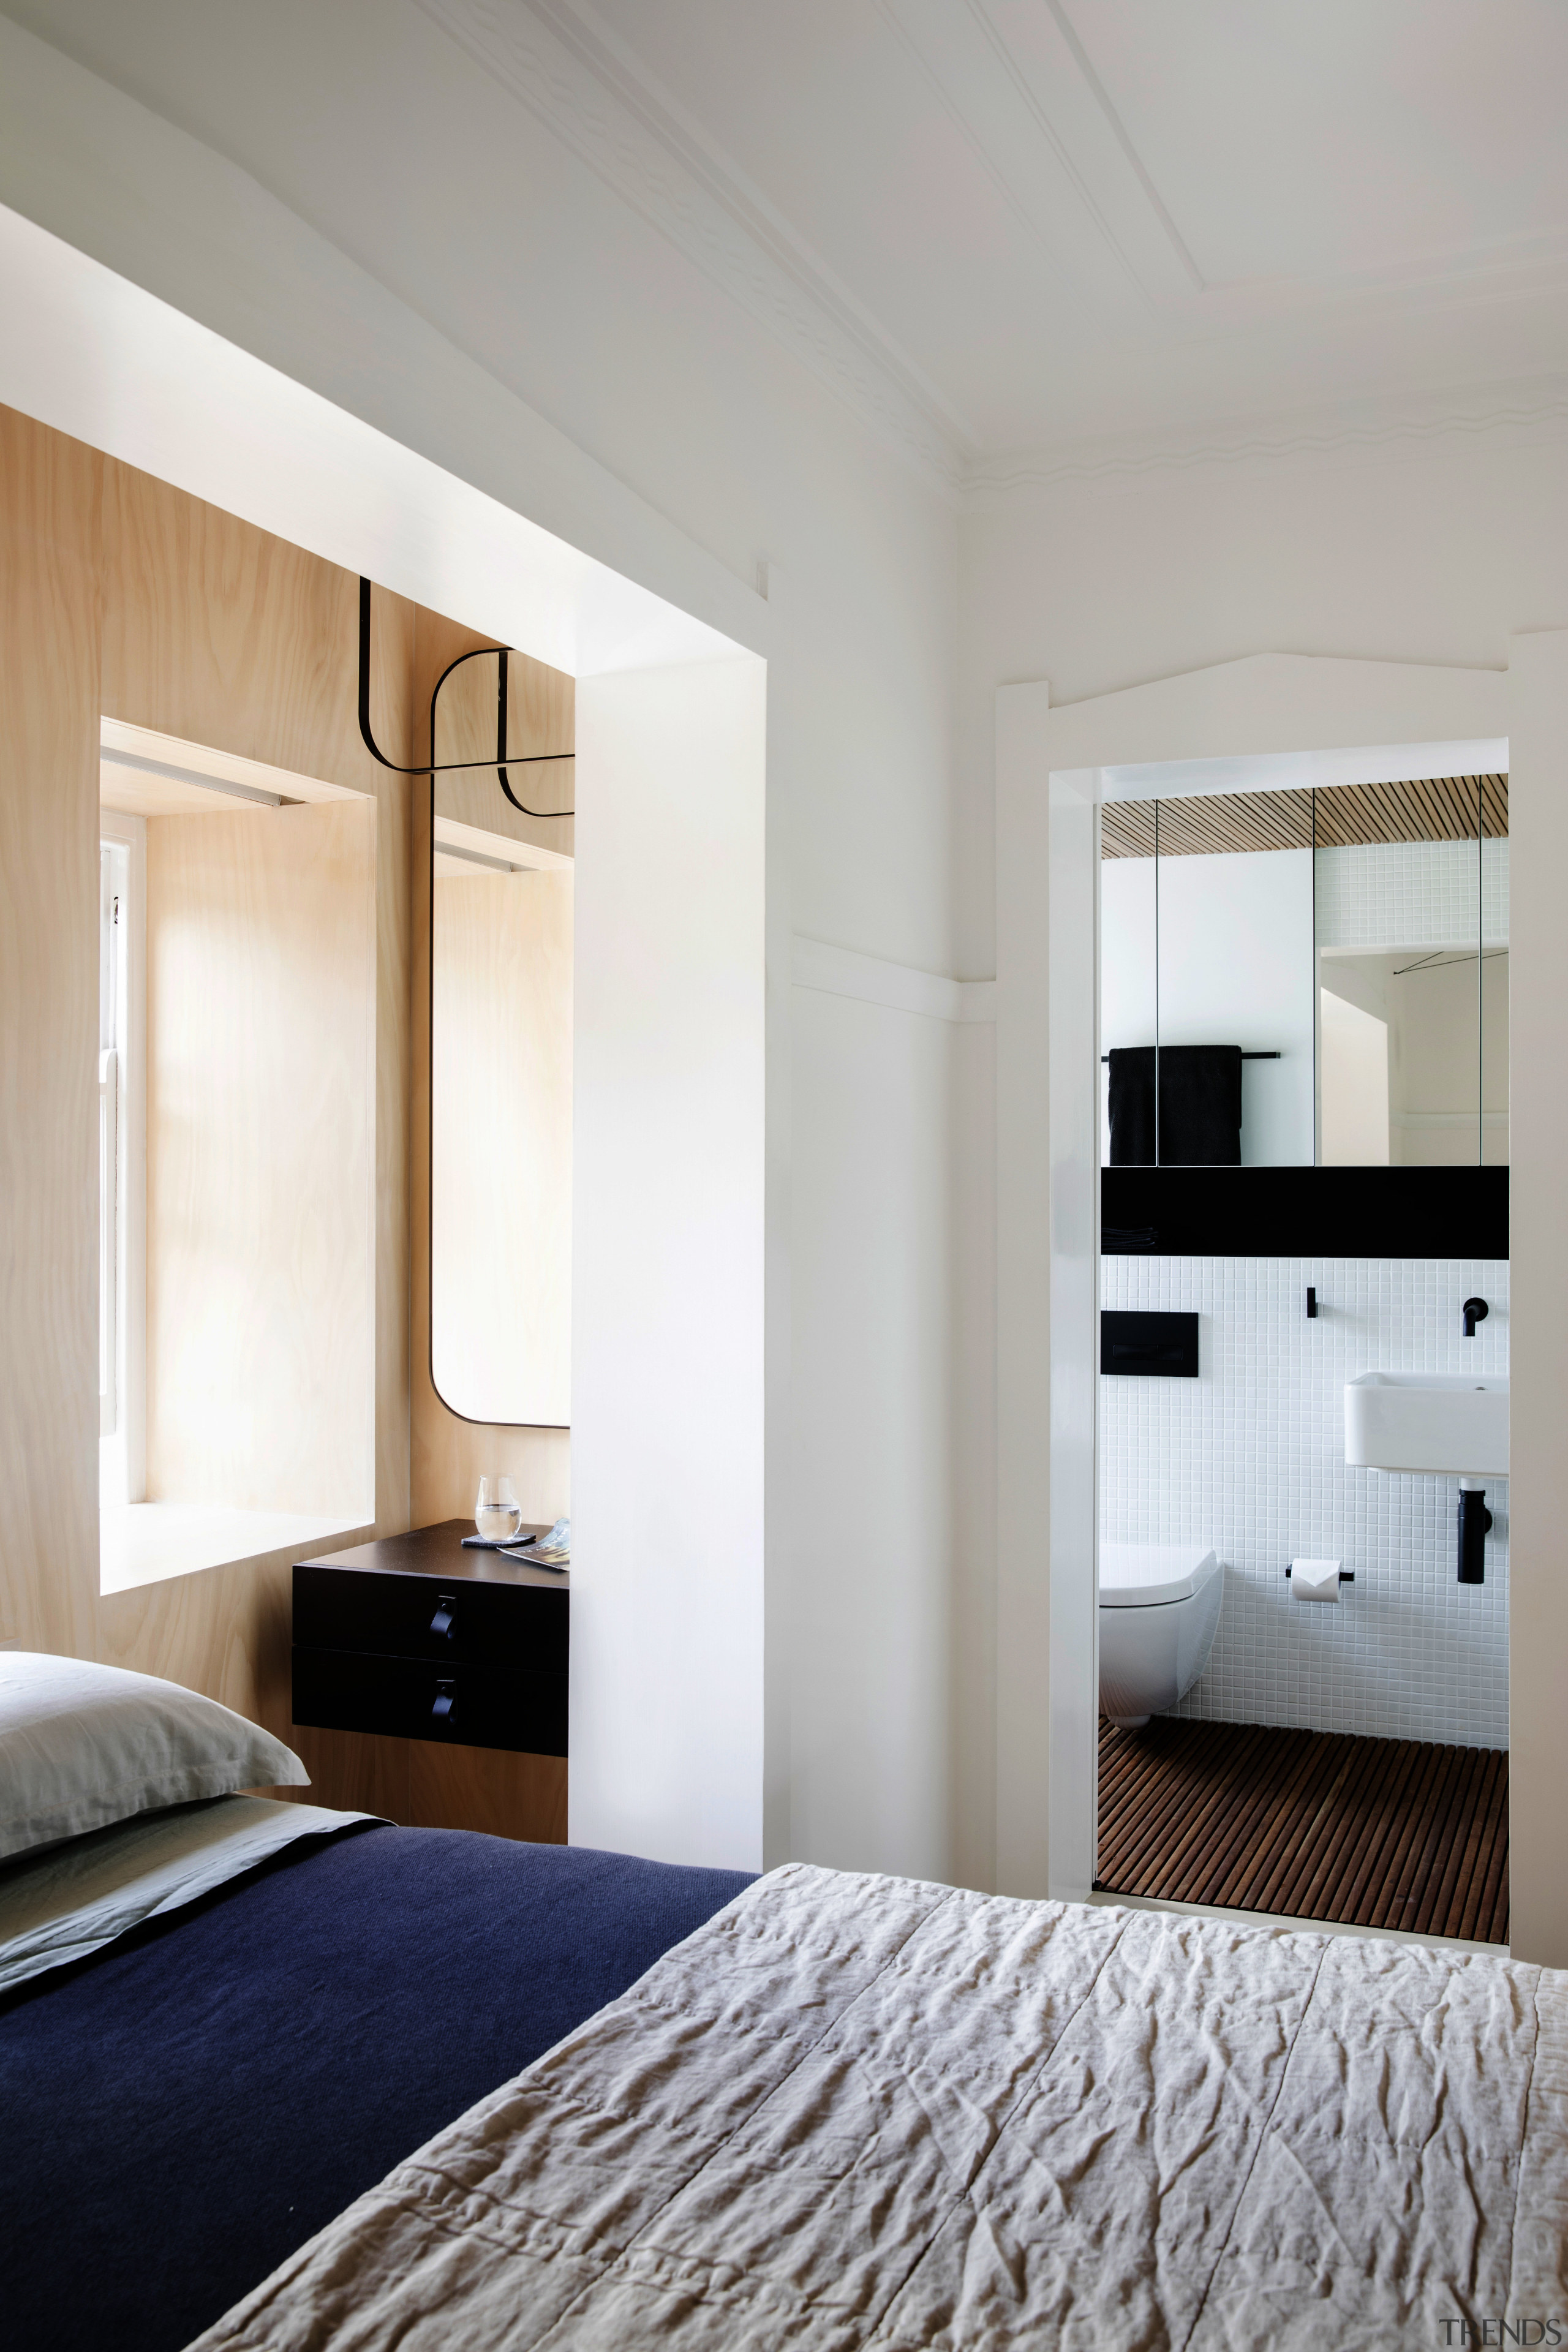 This reworked studio space by Architect Prineas vastly architecture, bed frame, bedroom, ceiling, floor, home, interior design, room, suite, wall, window, gray